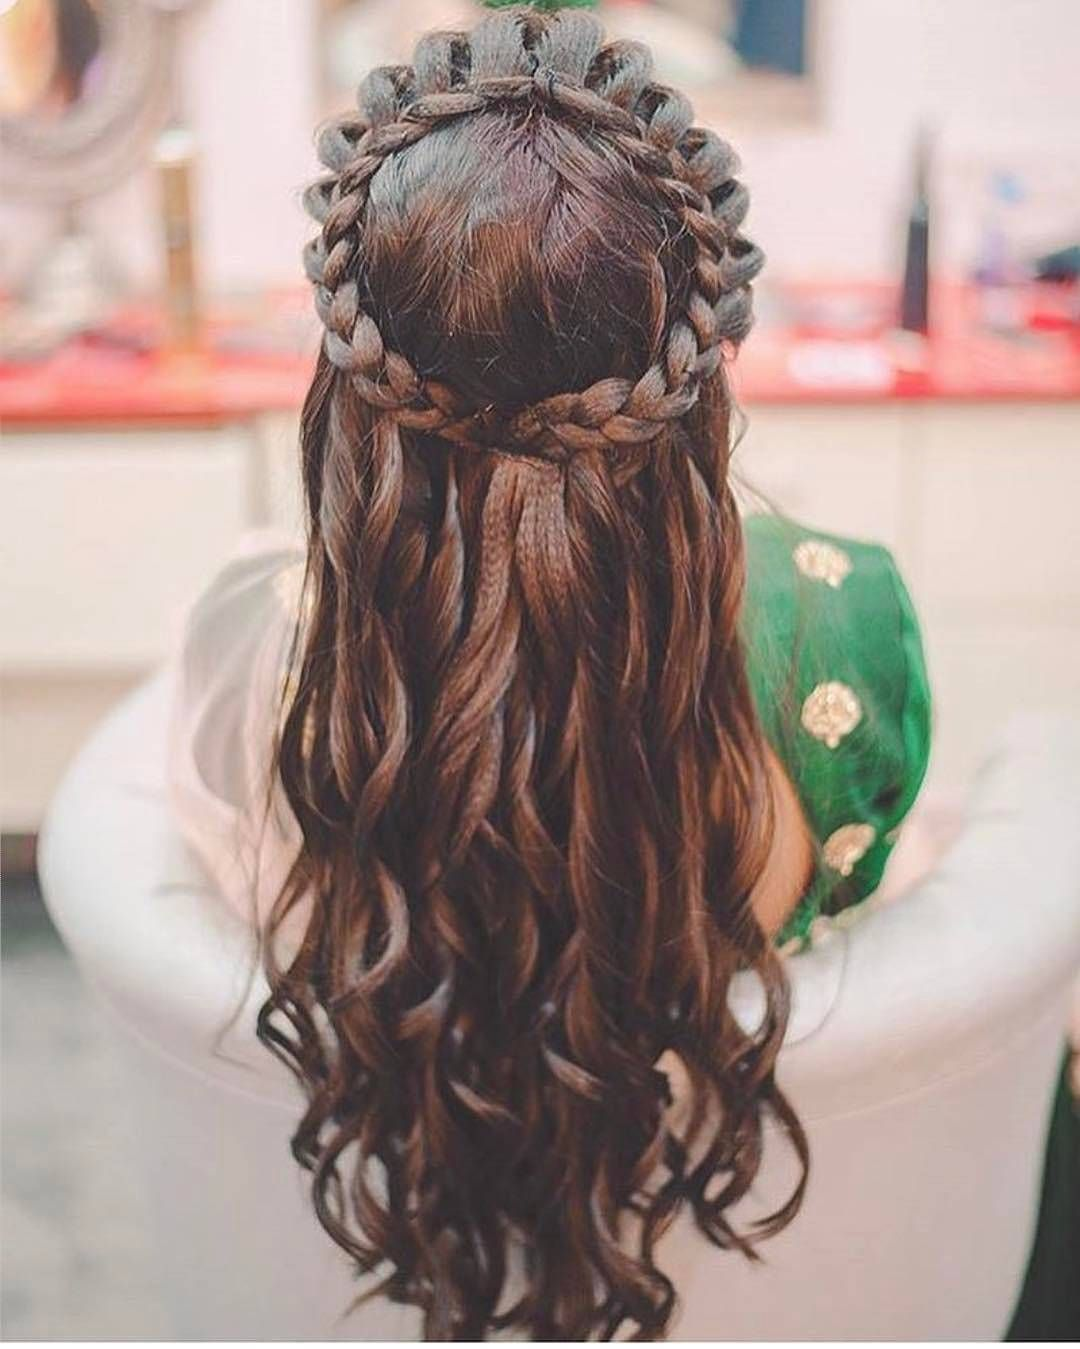 Hairstyle India On Instagram Hair Style Goals Hairstyle India Wedding Traditional Desi W Braids For Long Hair Loose Hairstyles Long Hair Styles